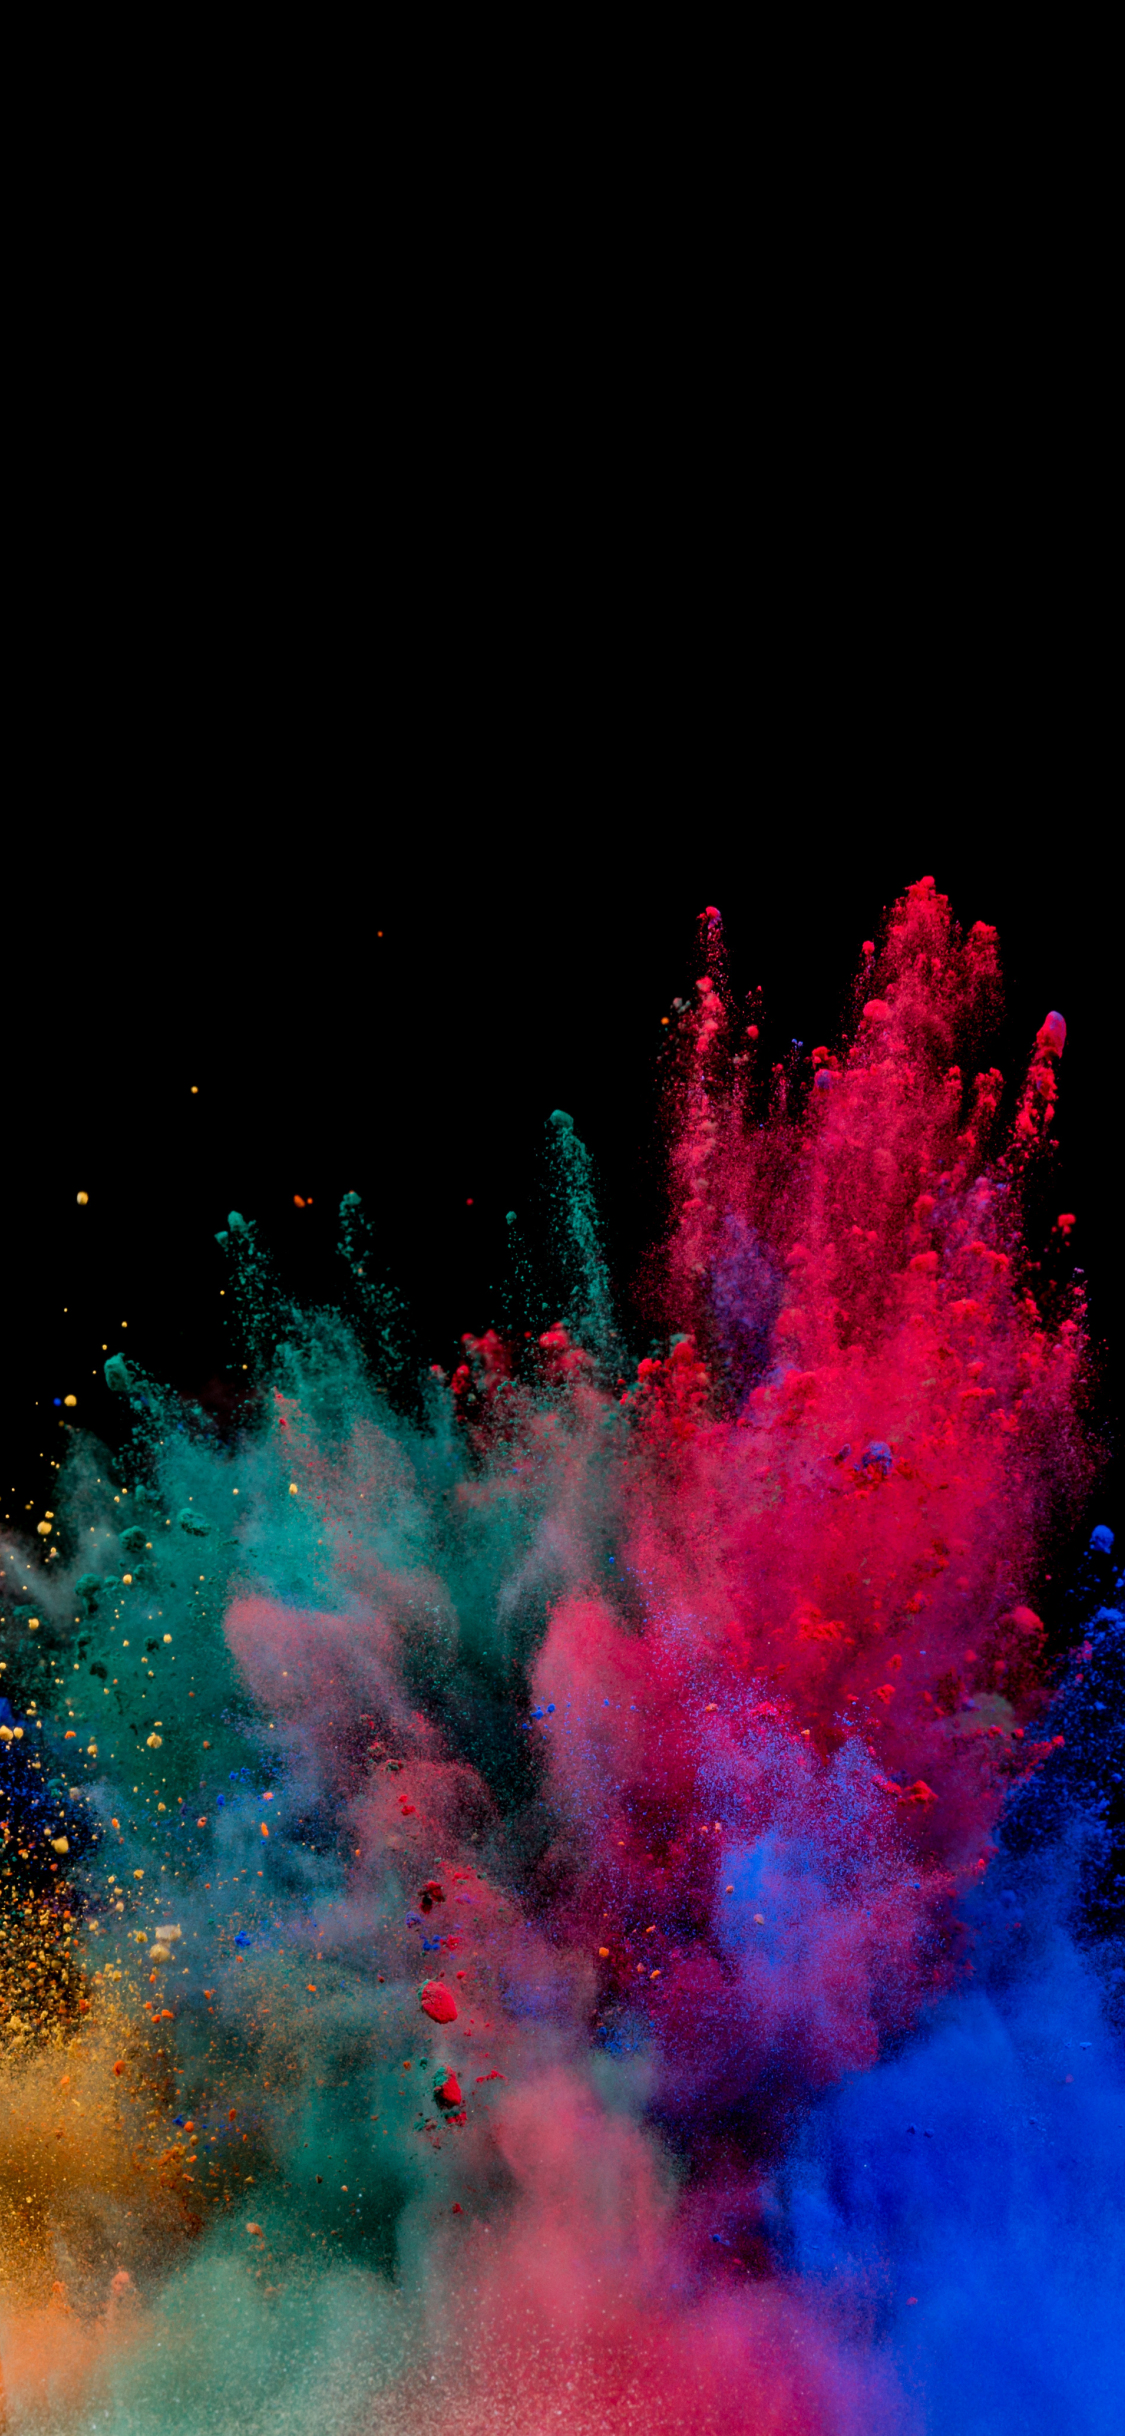 Wallpaper 4k Samsung Galaxy S8 Girls Download 1125x2436 Wallpaper Colors Blast Explosion